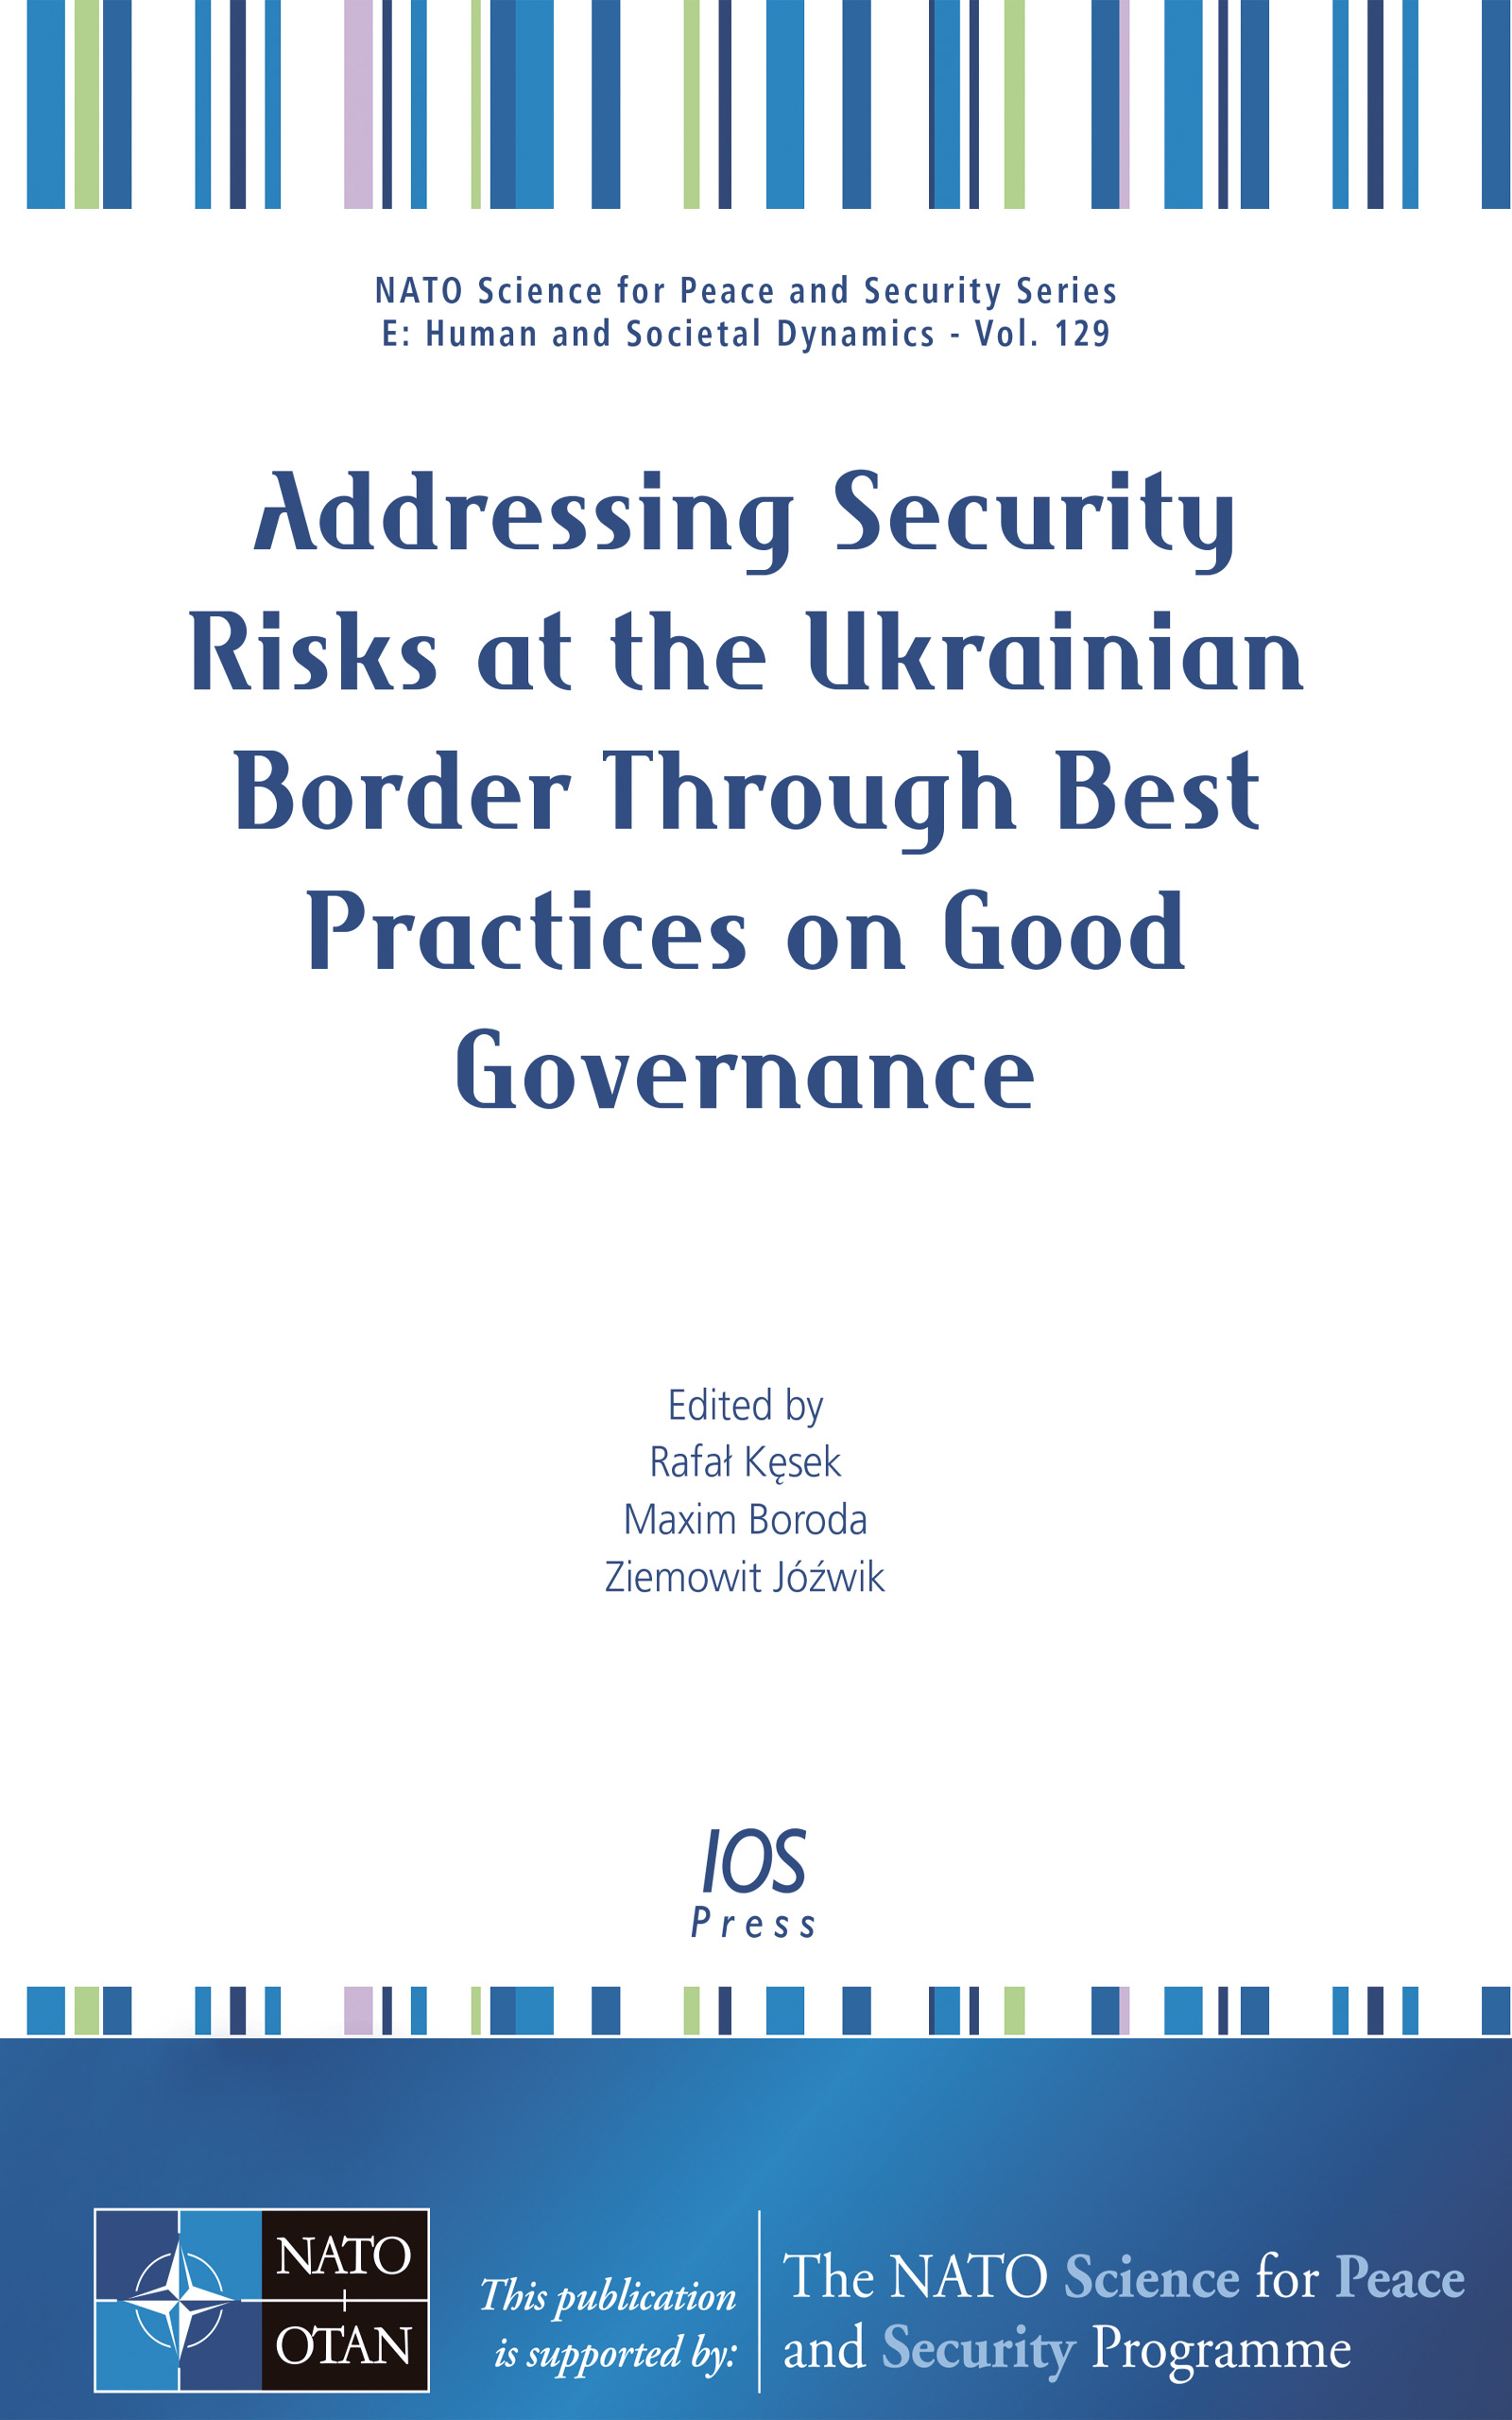 book cover_addressing security risks at the ukrainian border through best practices on good governance.jpg